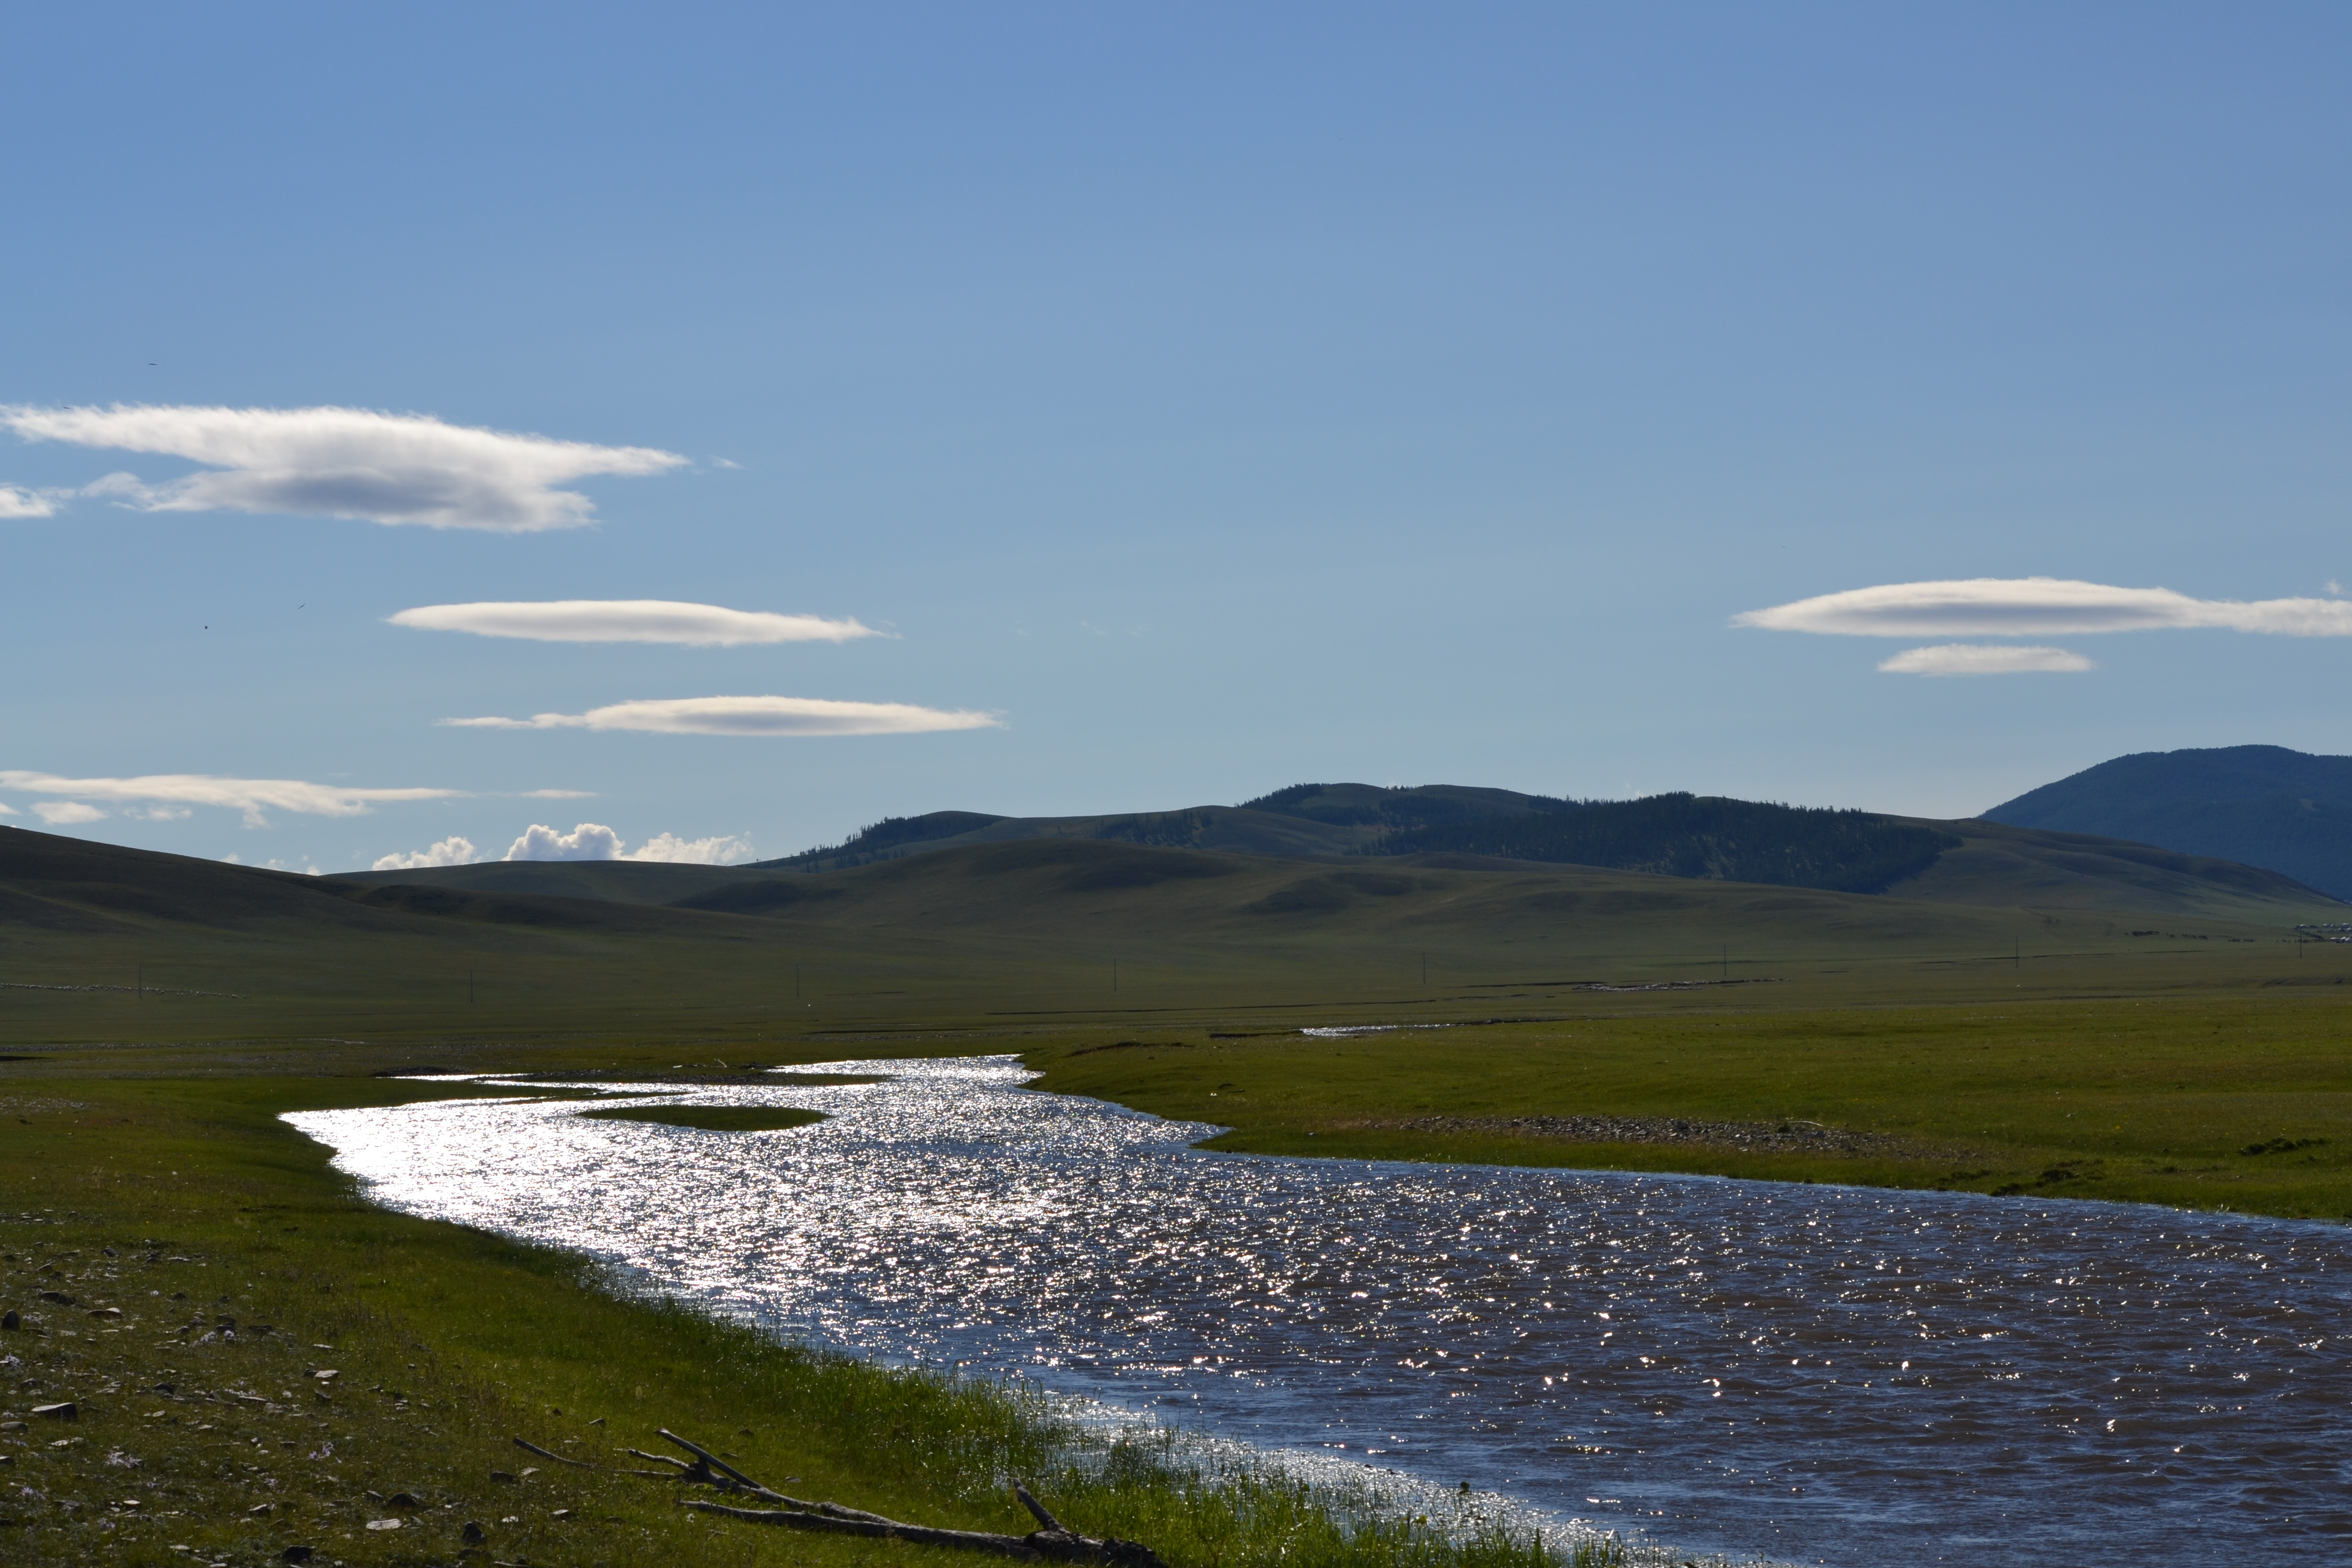 Image of scenery in Tsenkher Hot Springs, Mongolia